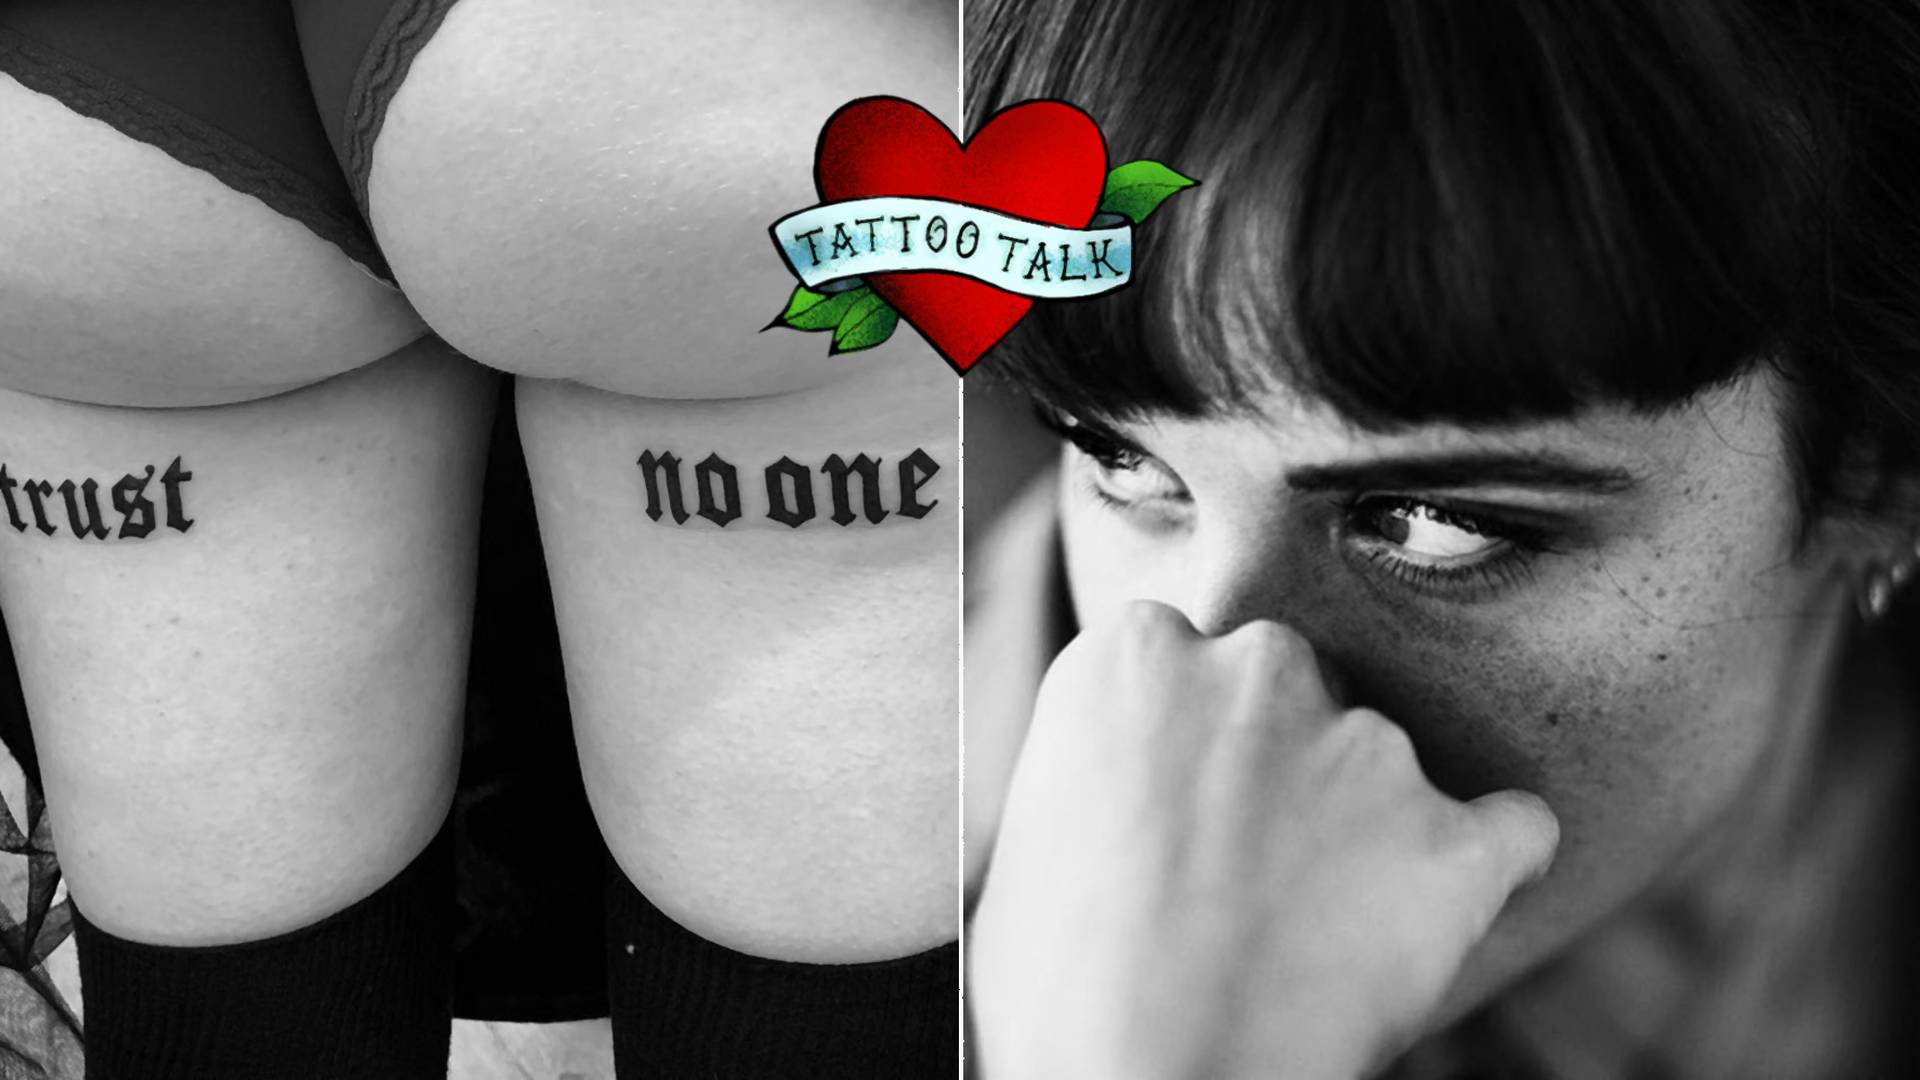 Filigranes Blackwork: Emma Lola aus Berlin im Tattoo Talk #33